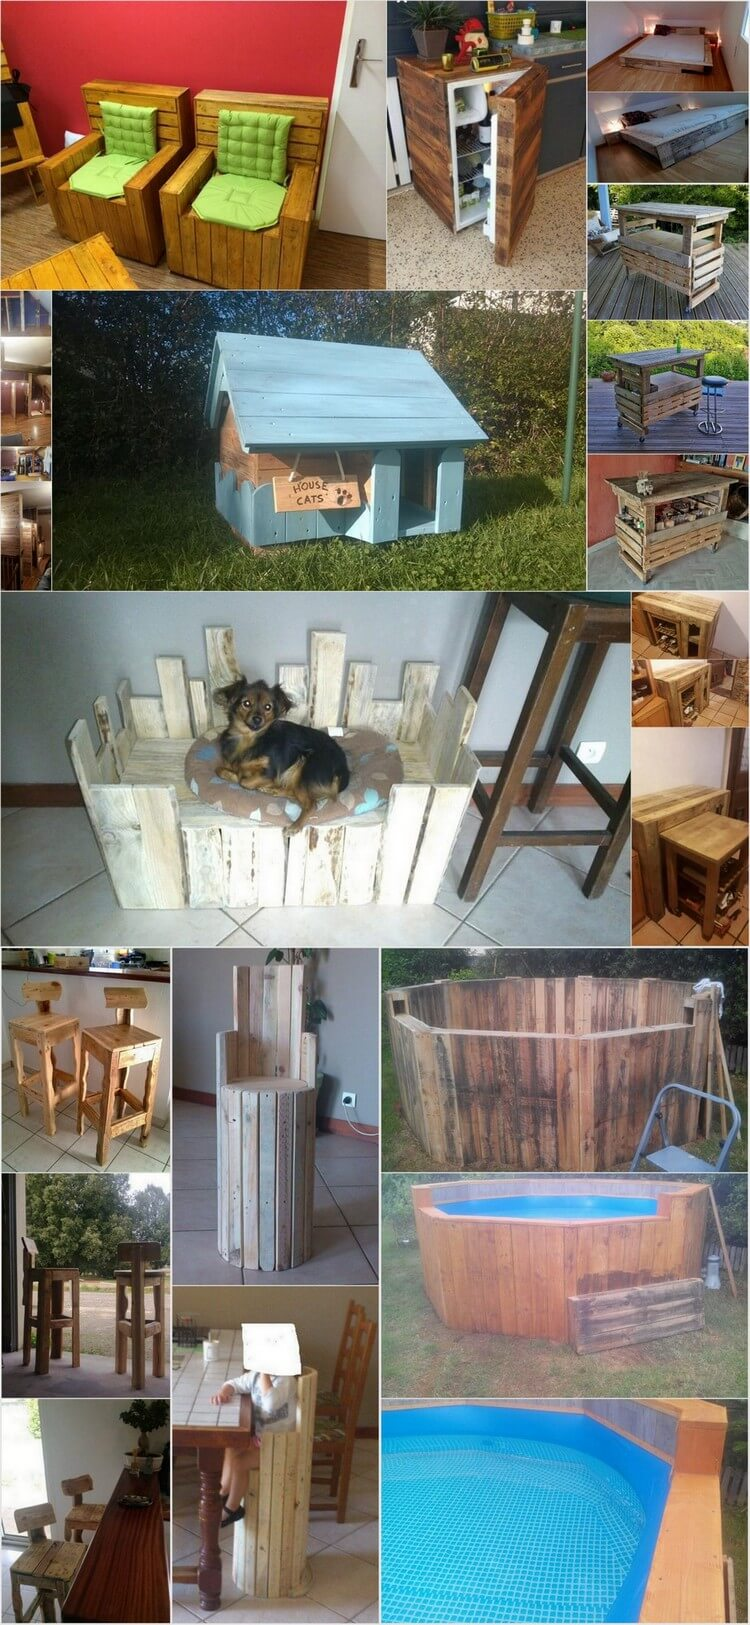 Ingenious Ways to Give Wood Pallets Second Chance